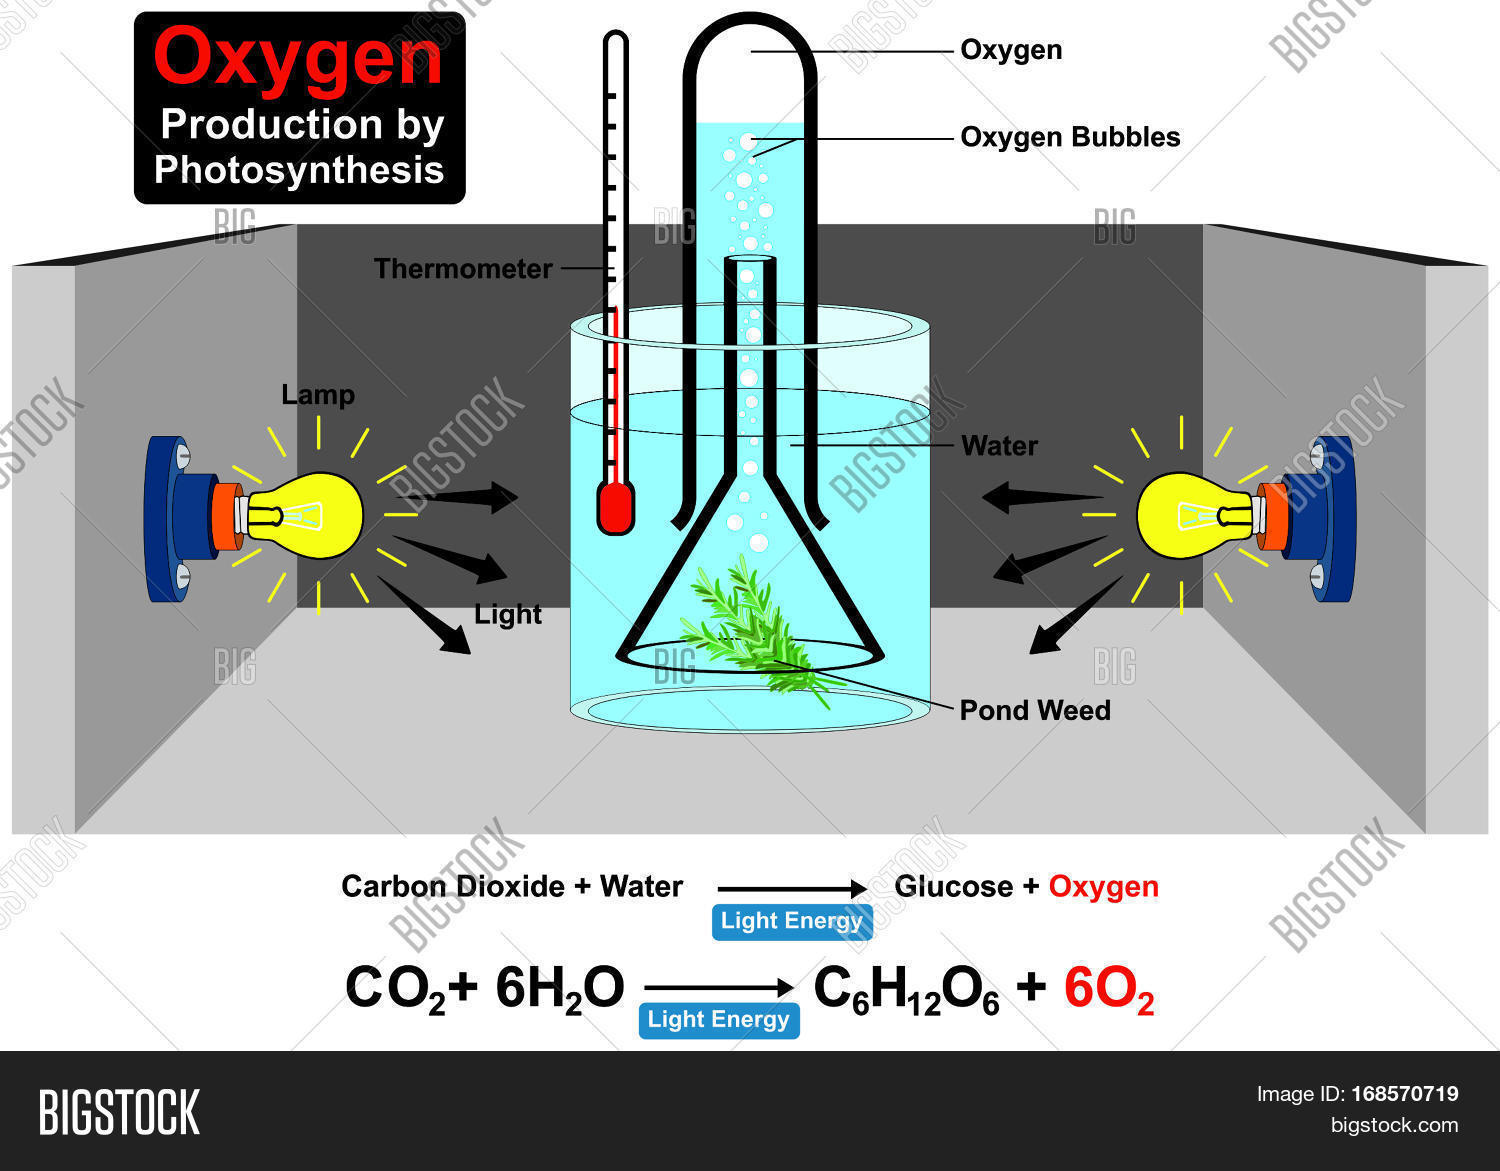 Oxygen production by image photo free trial bigstock oxygen production by photosynthesis process experiment with chemical formula wit parts lamp water plant pond weed ccuart Choice Image